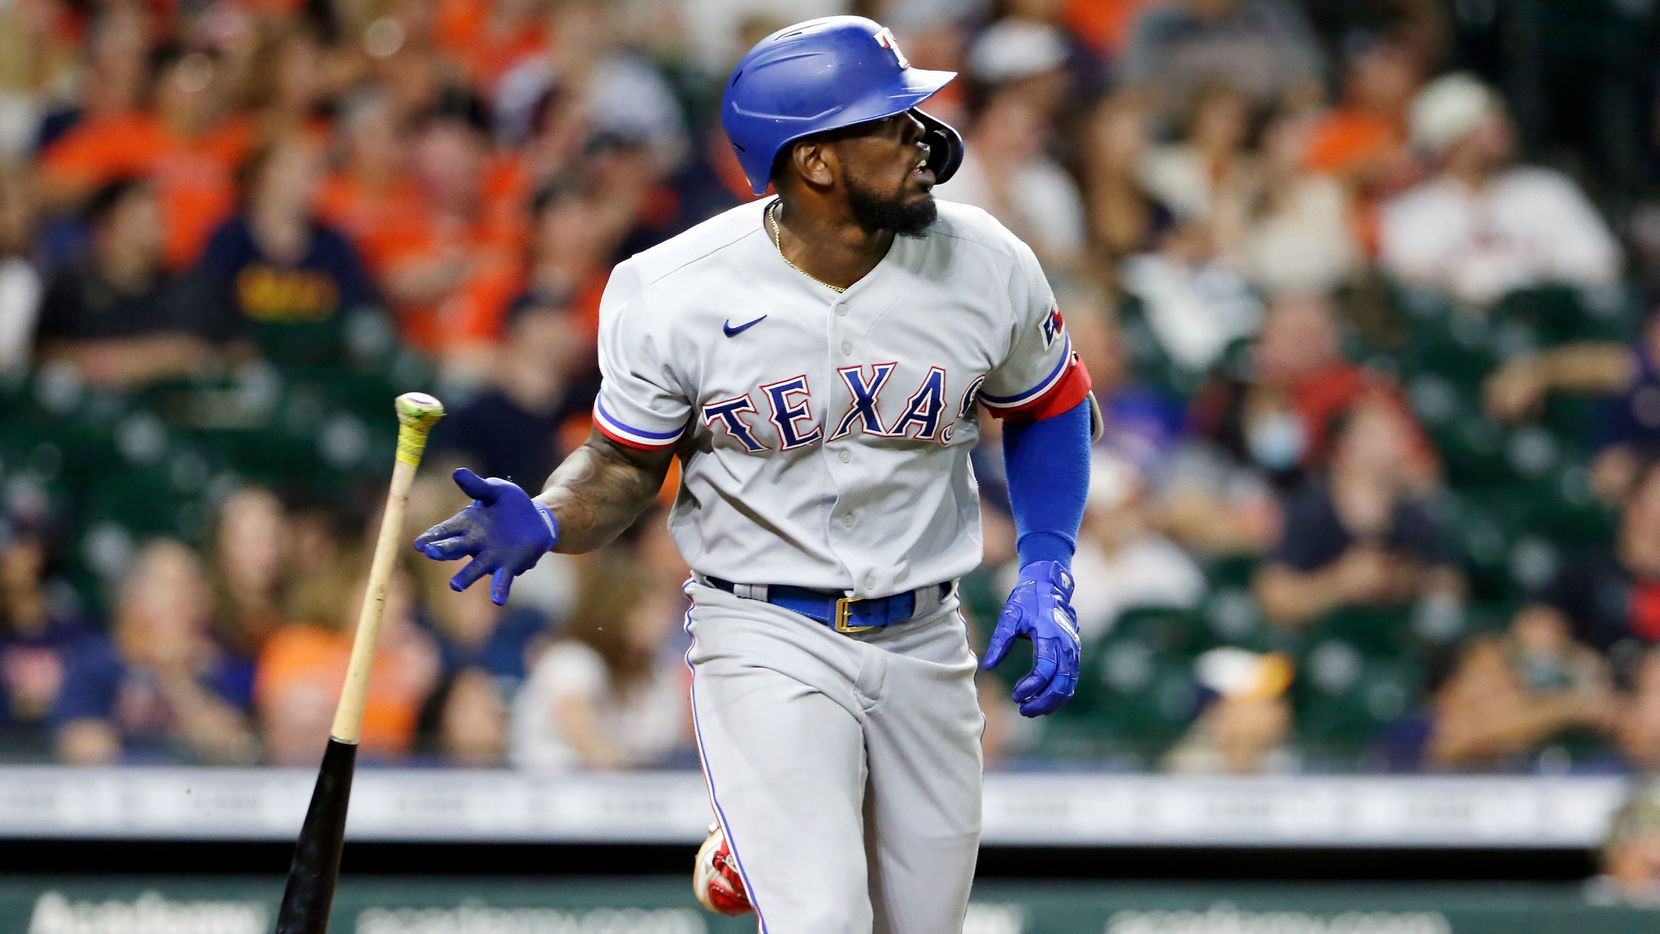 Texas Rangers' Adolis Garcia flips his bat as he watches his home run against the Houston Astros during the eighth inning of a baseball game Friday, May 14, 2021, in Houston.